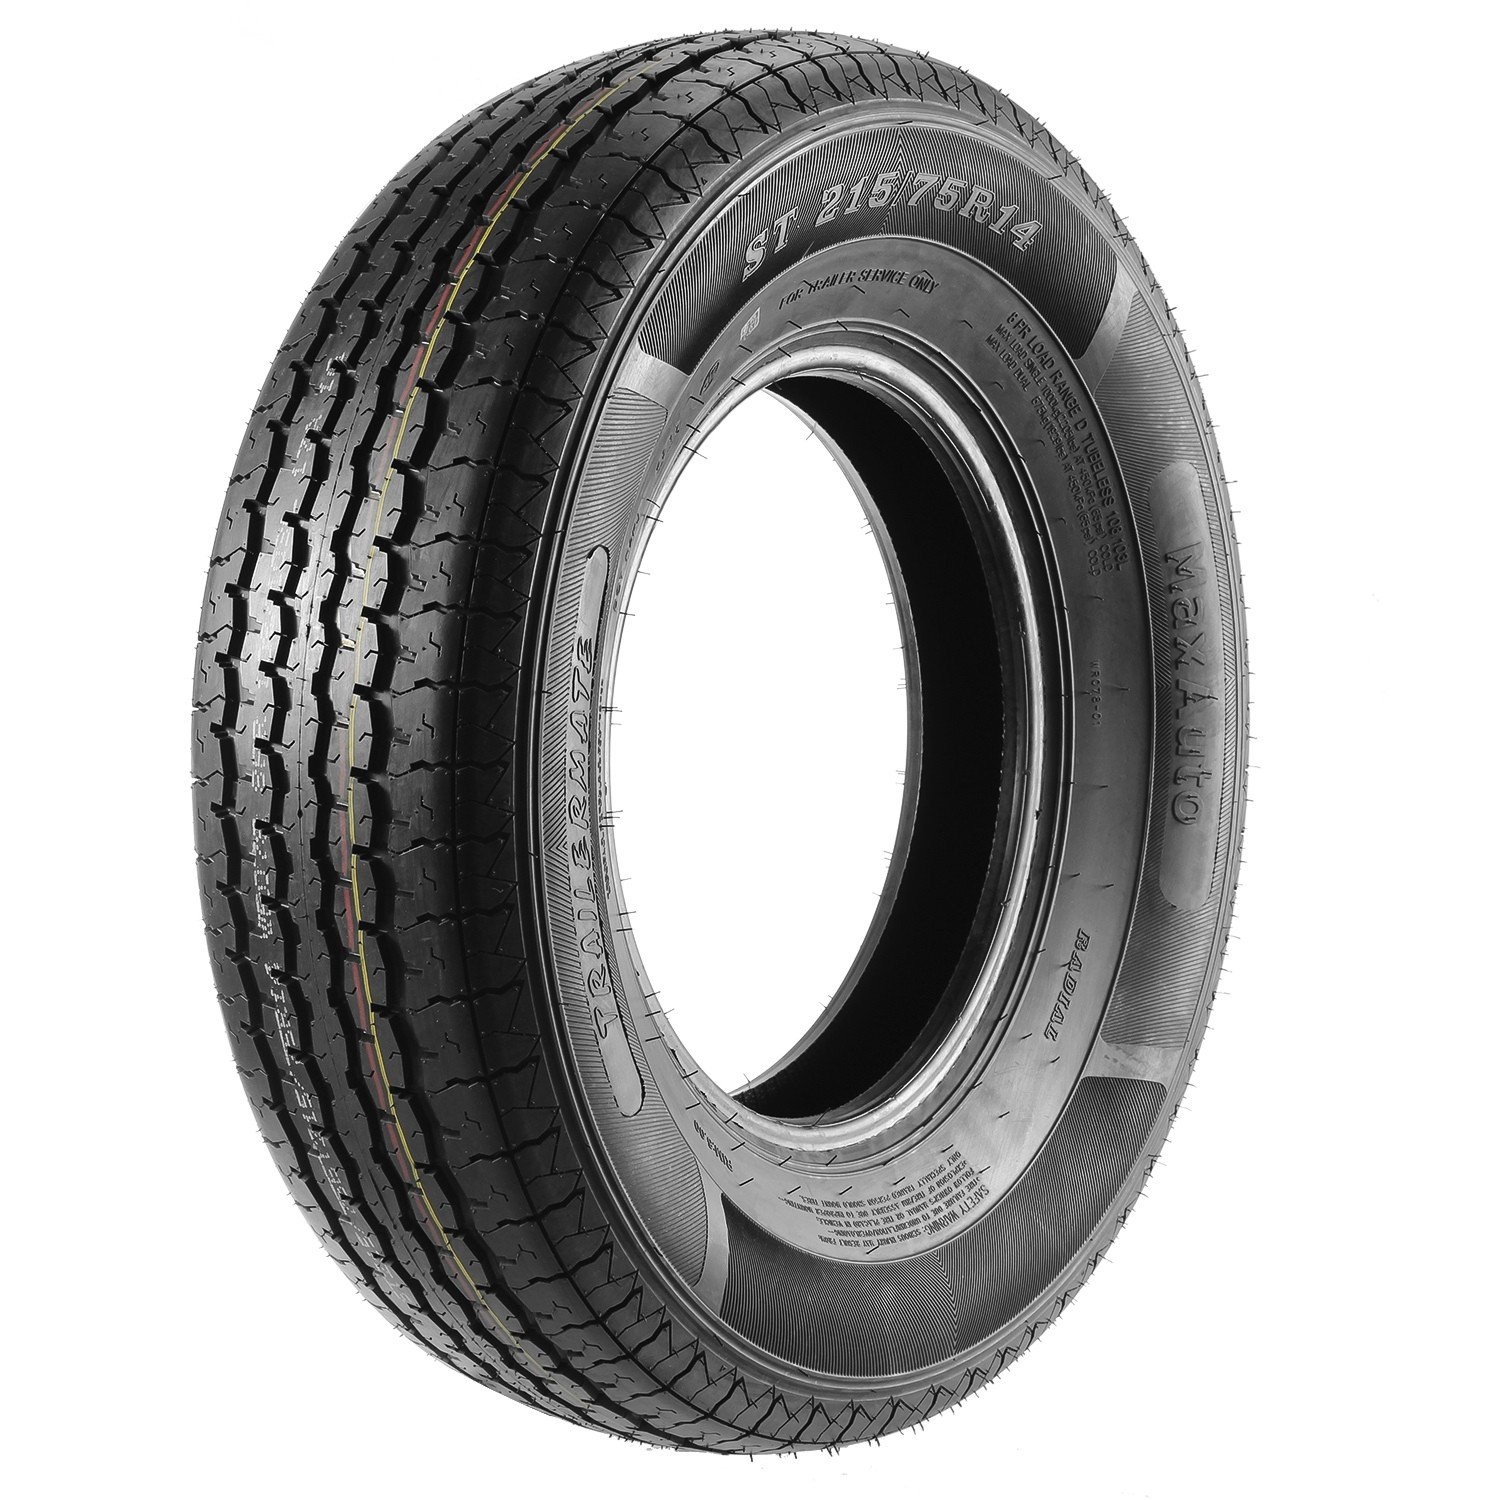 ST215/75R14 Load Range D MaxAuto Radial Trailer Tires ST215/75R-14 8Ply(Pack of 4) by MaxAuto (Image #2)